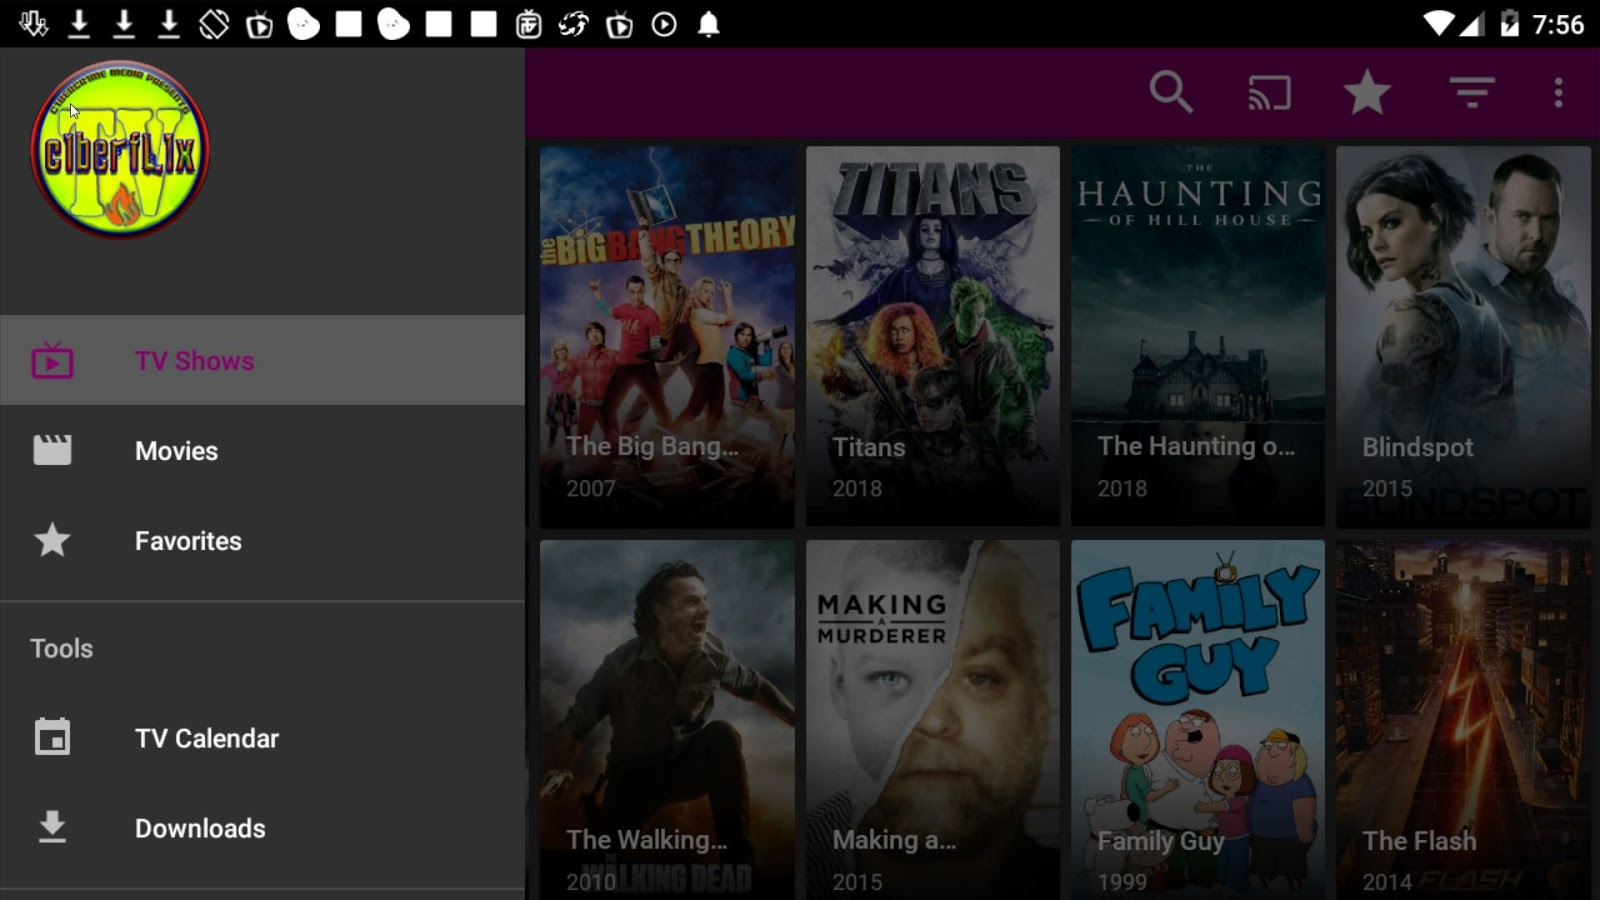 CyberFlix TV Apk App 2019 for Android or Amazon Fire Devices